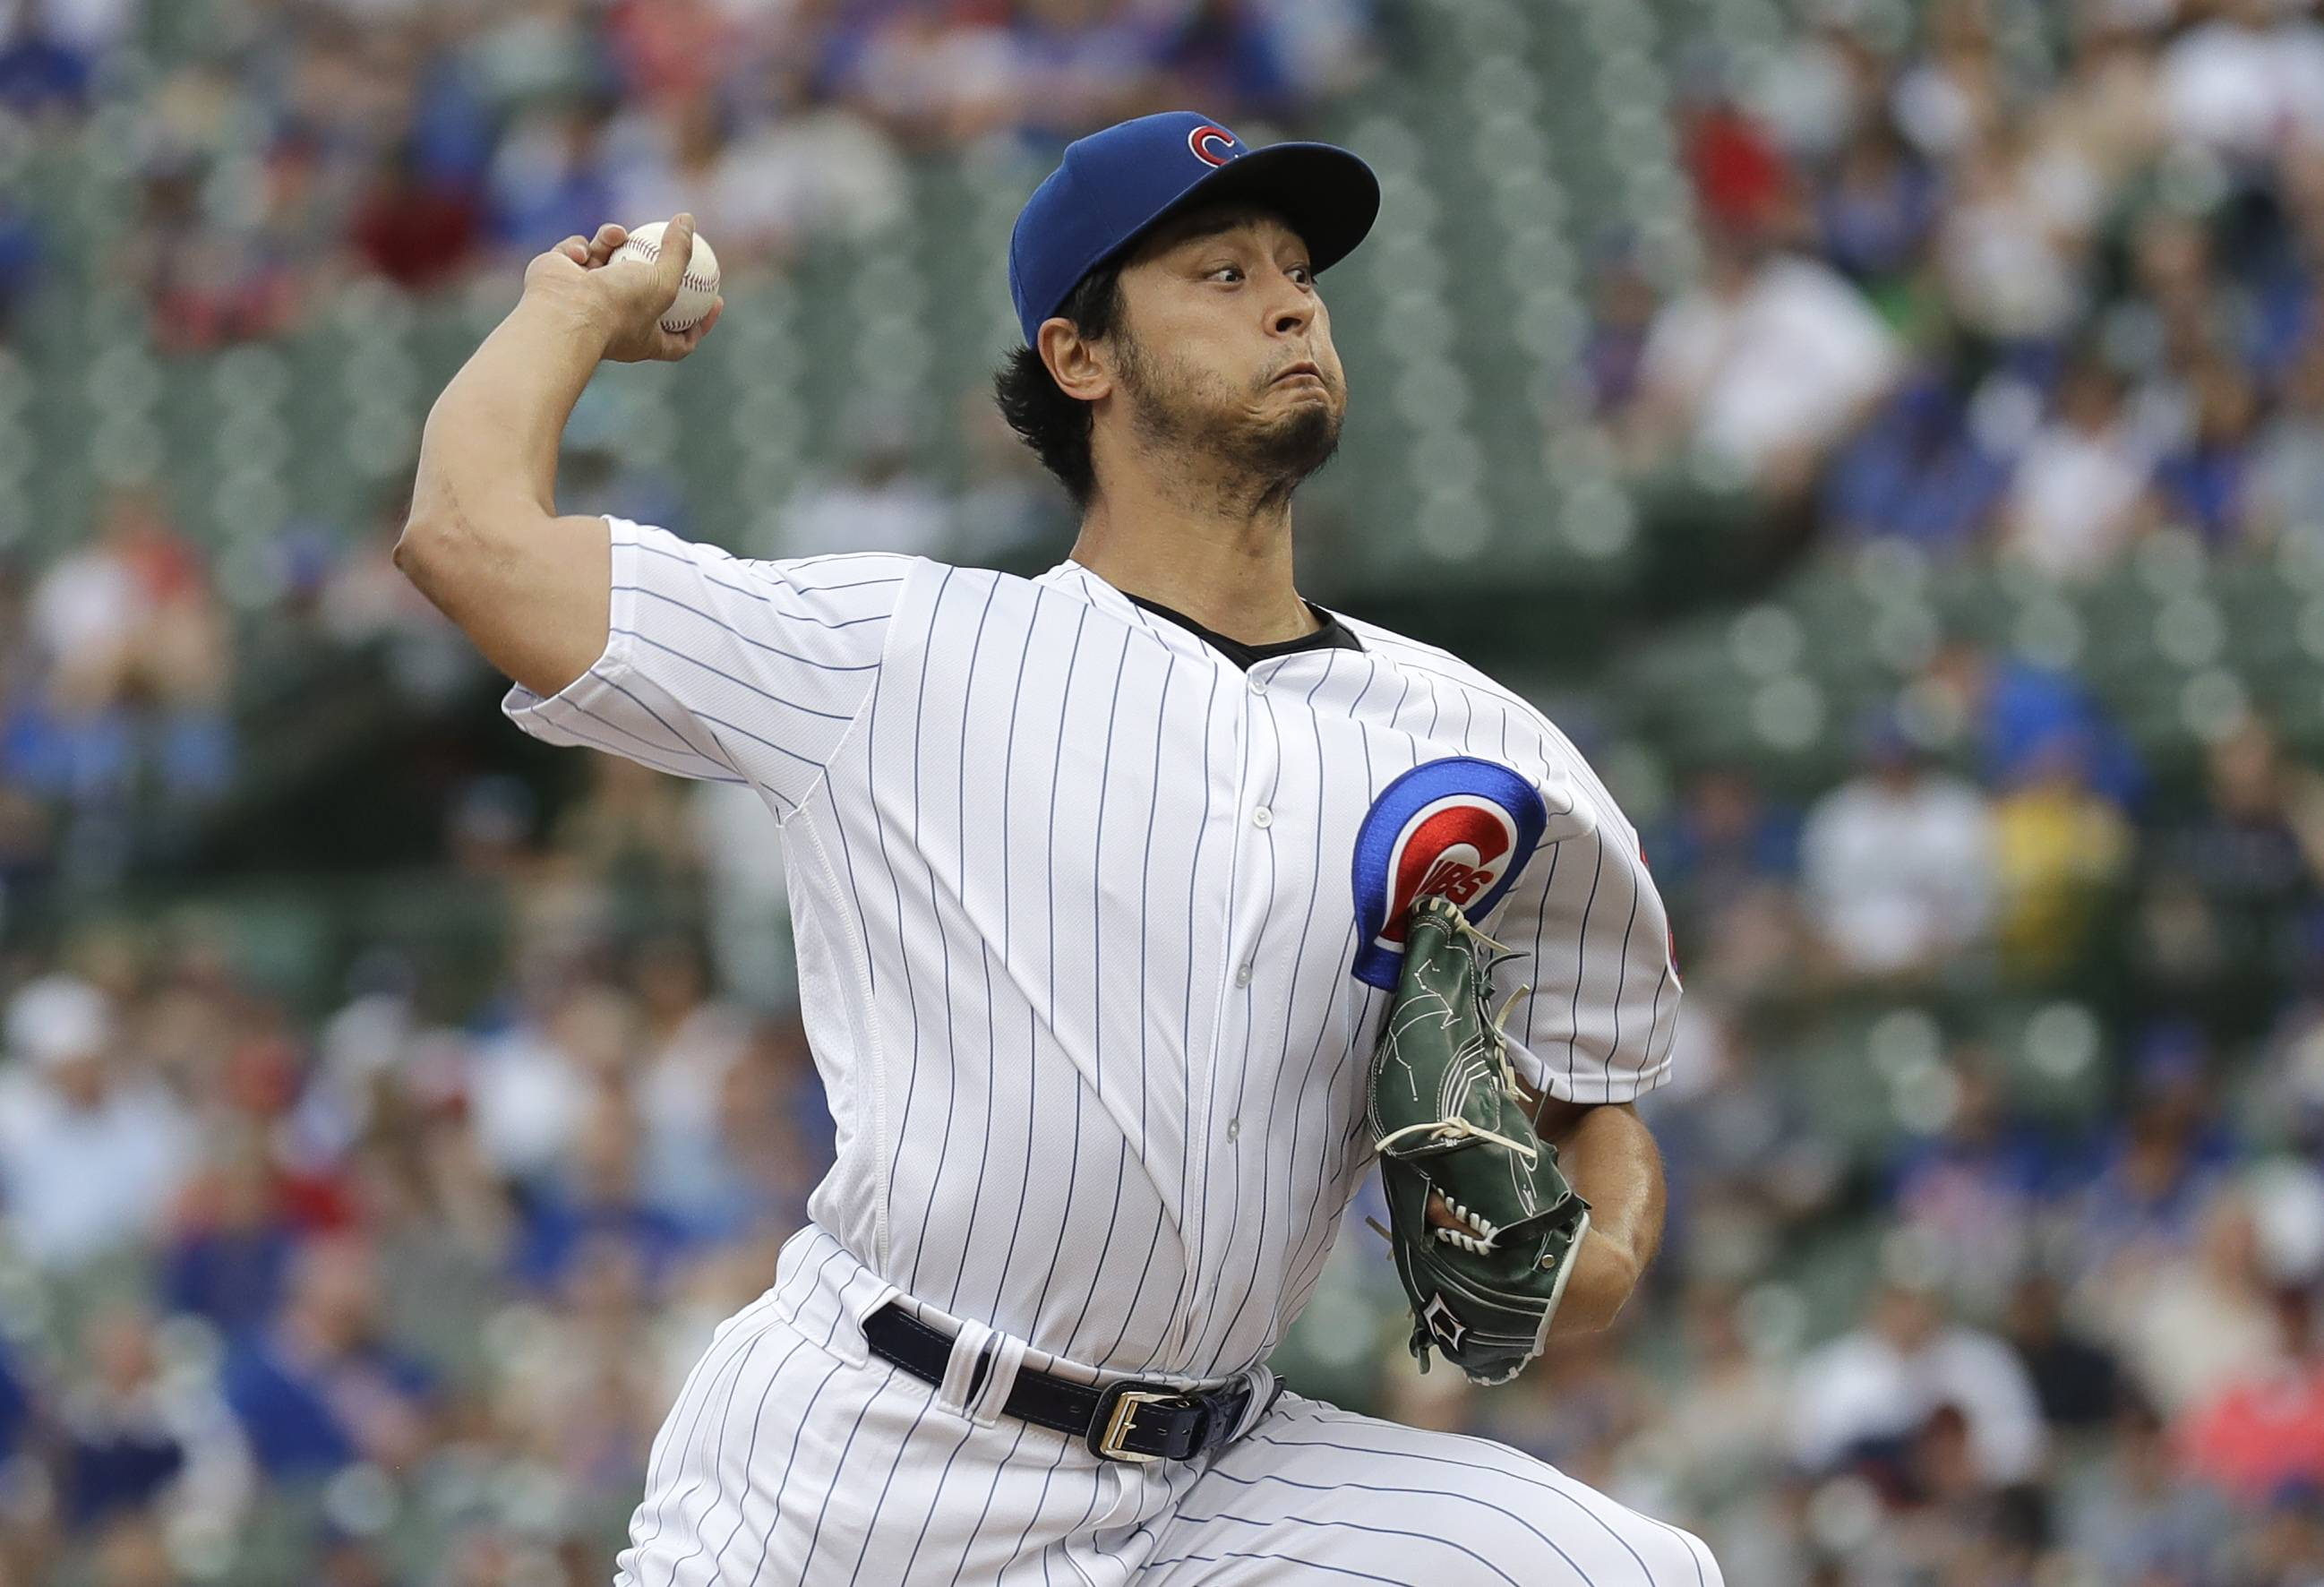 Chicago Cubs starting pitcher Yu Darvish throws against the Cincinnati Reds during the first inning of the game Saturday at Wrigley Field. Manager Joe Maddon said he believed the longer outing will benefit Darvish down the line.